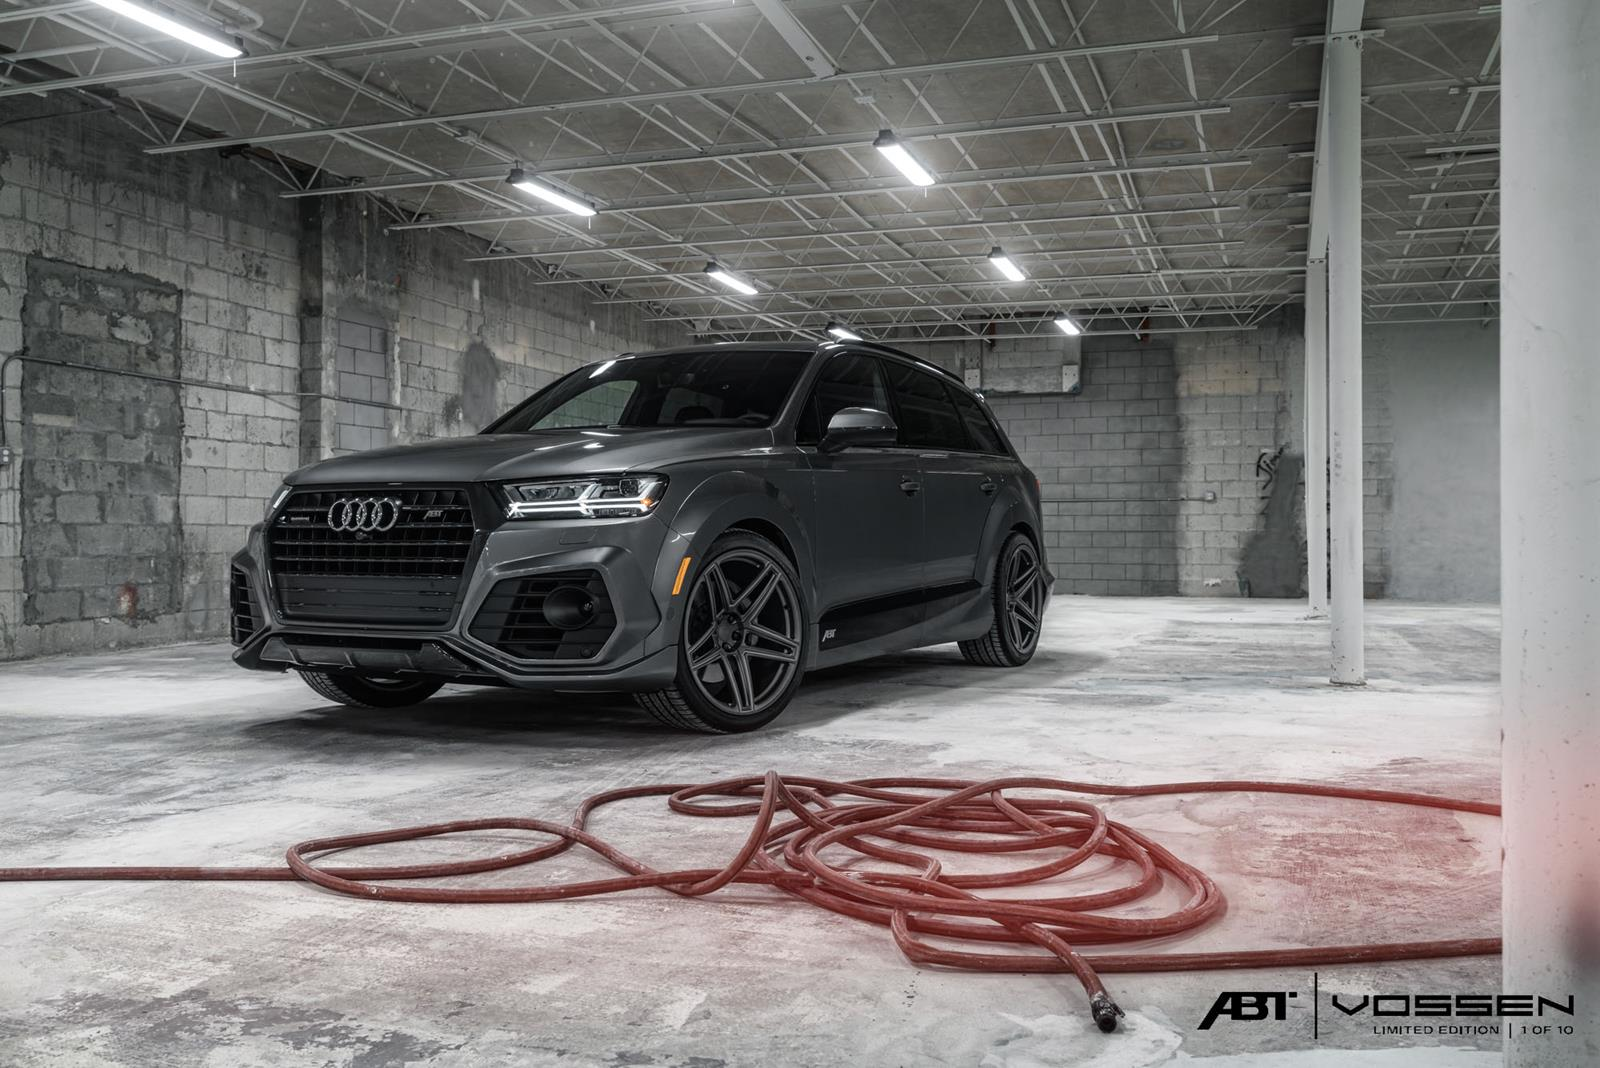 Audi Sq7 Vossen Abt X Vossen Forged Avx Vossen Wheels